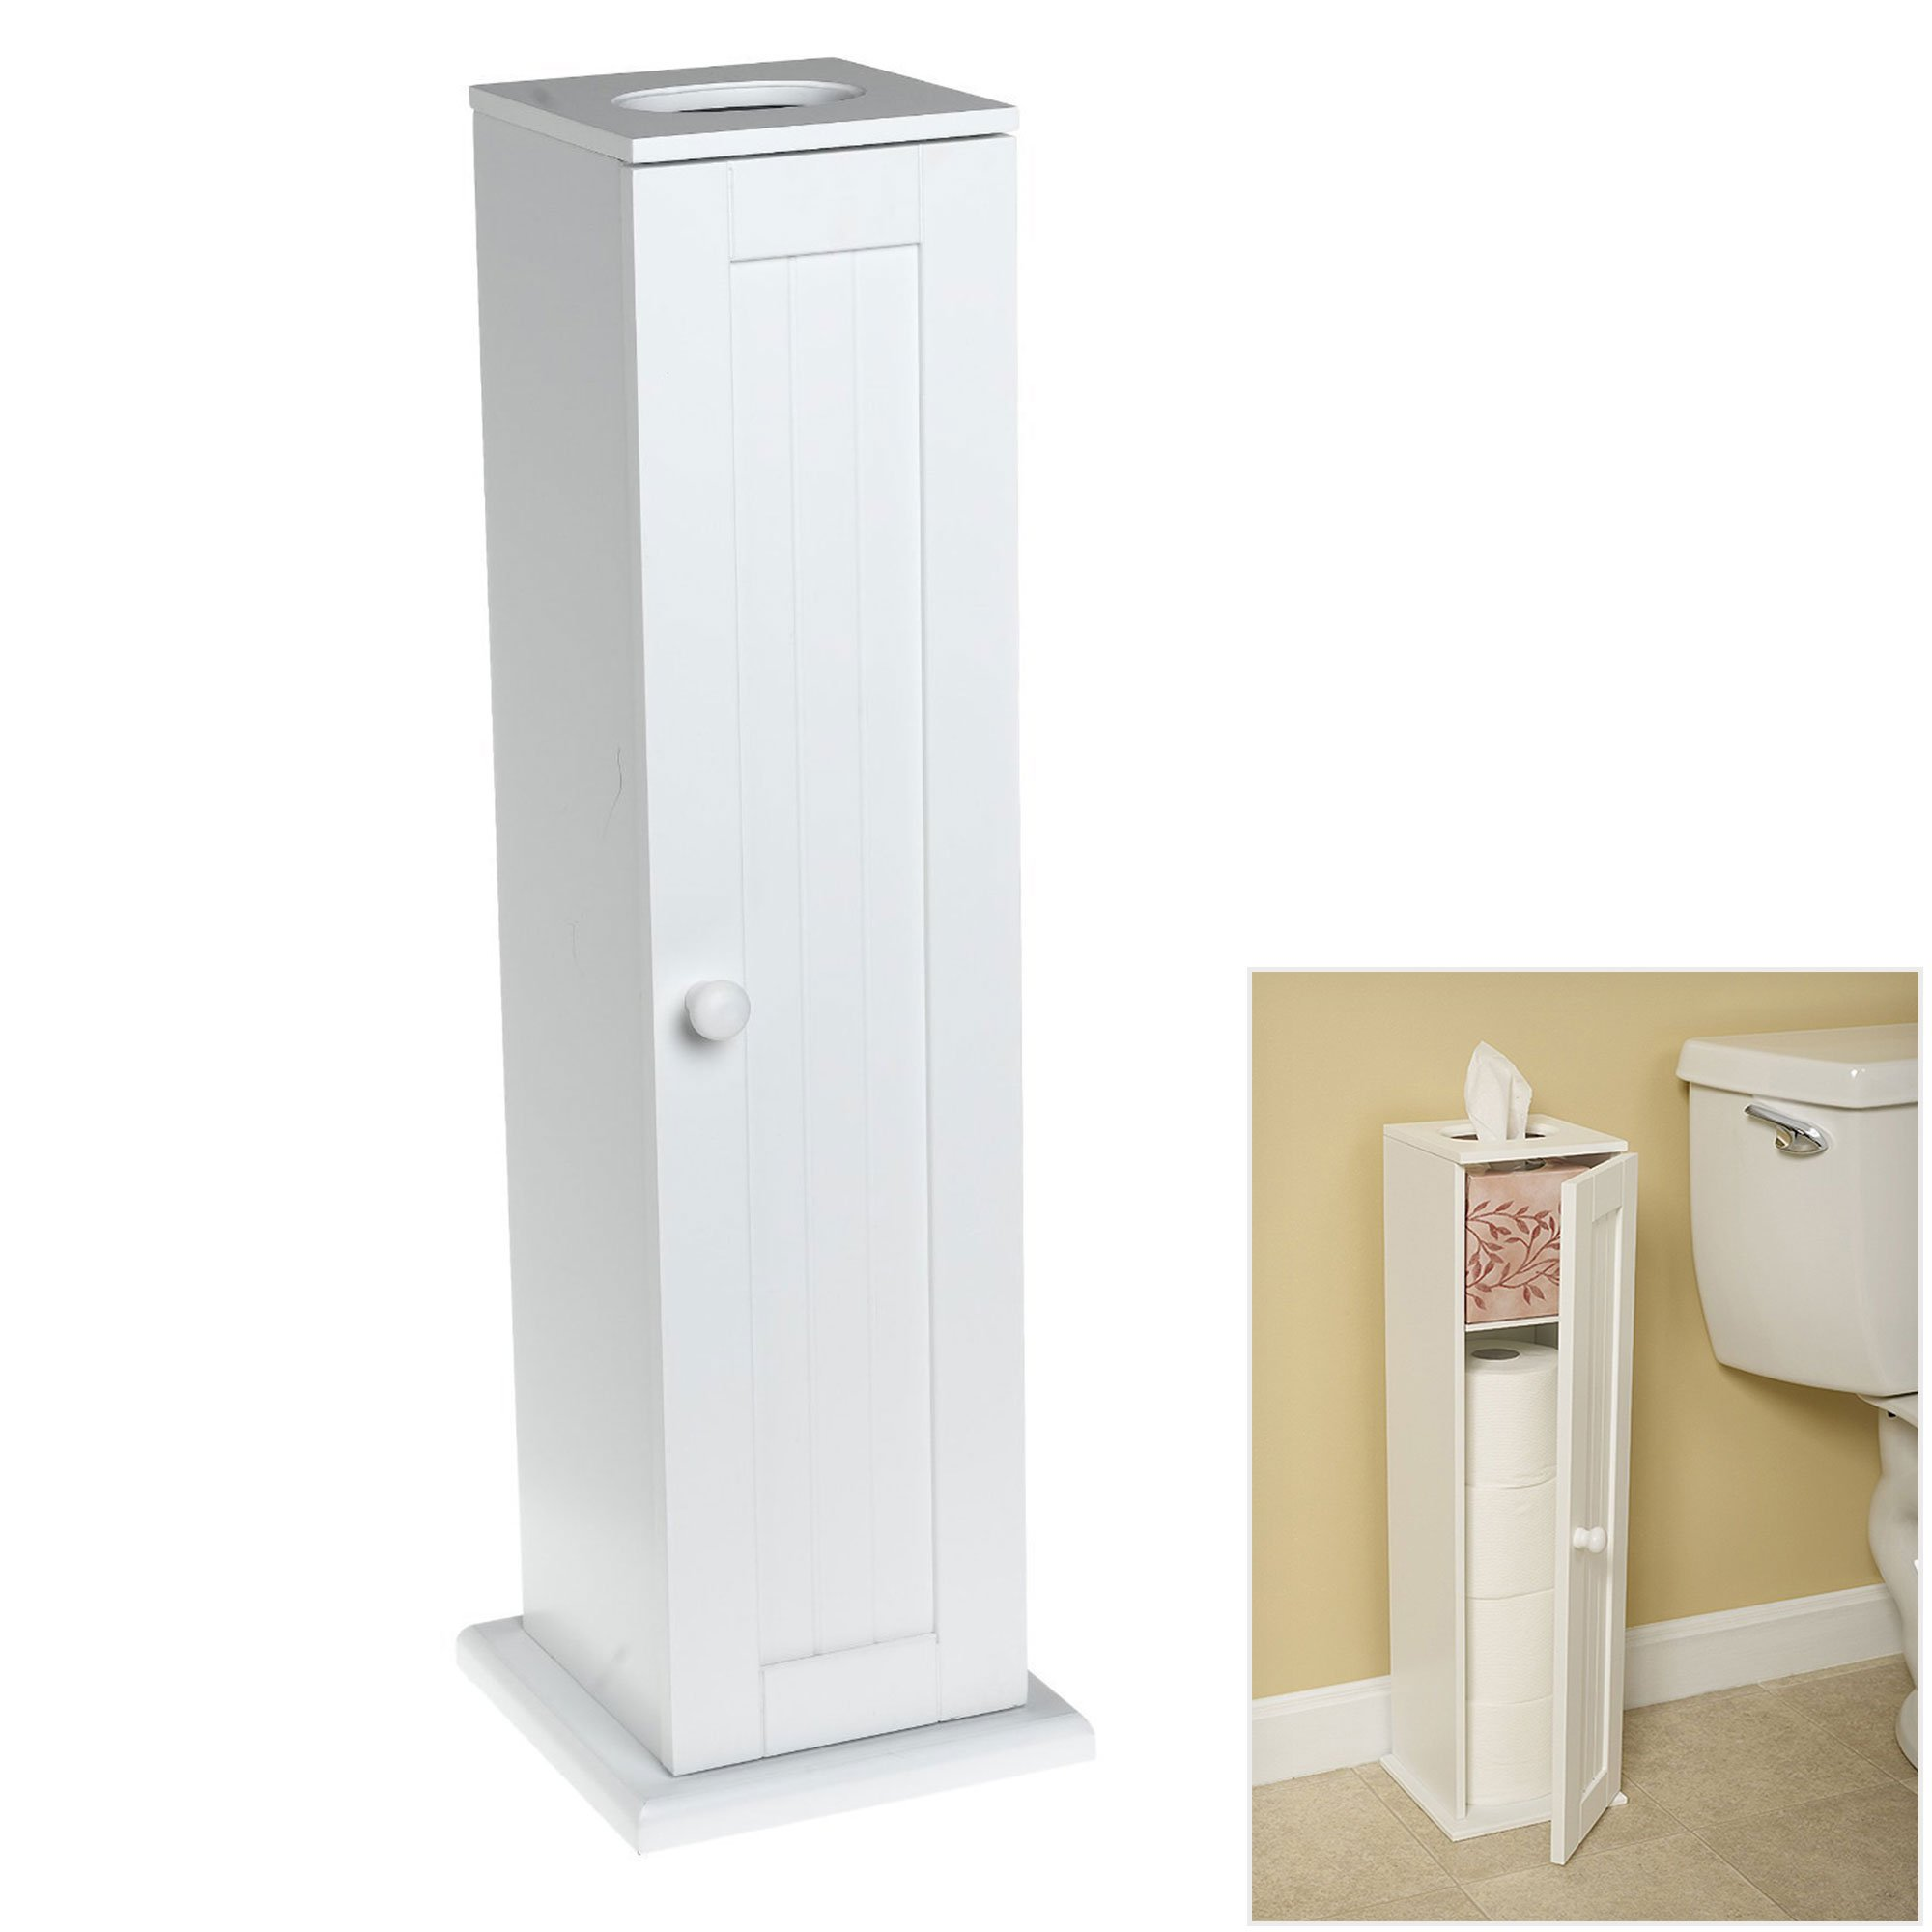 Free Standing White Toilet Paper Bathroom Cabinet Holder by Wholesale Plumbing Supply